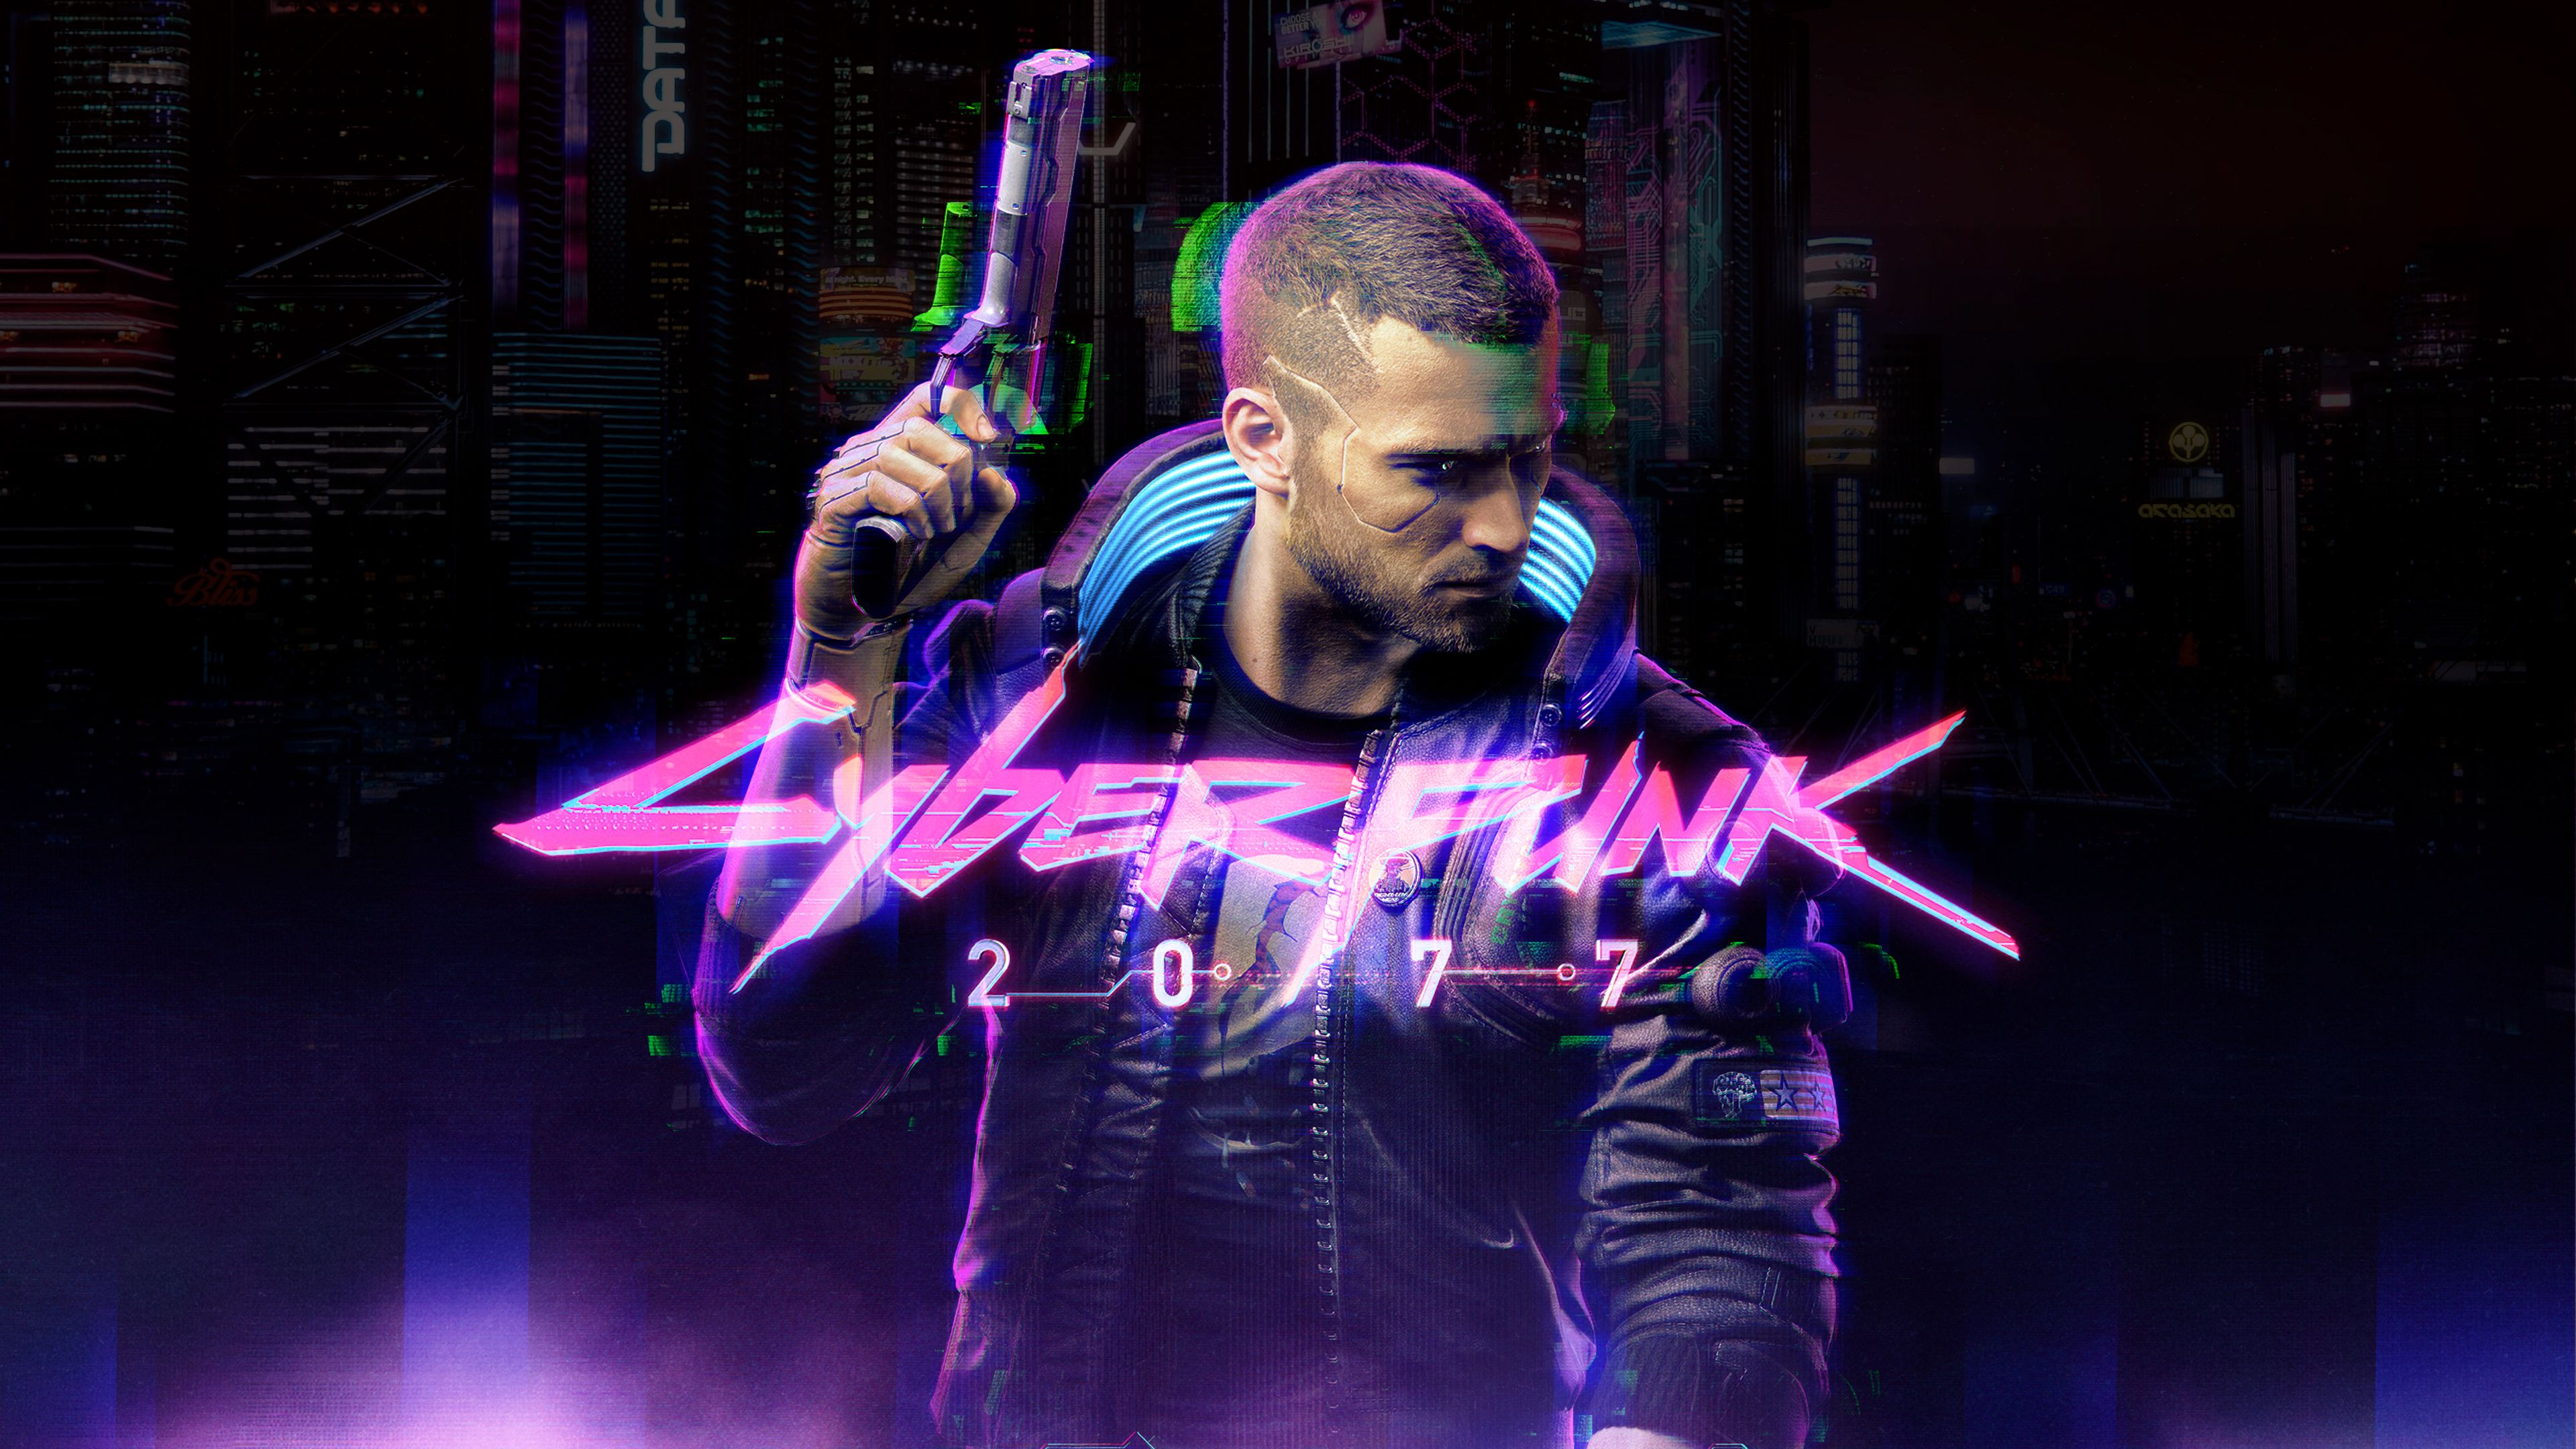 Pin On Cyberpunk 2077